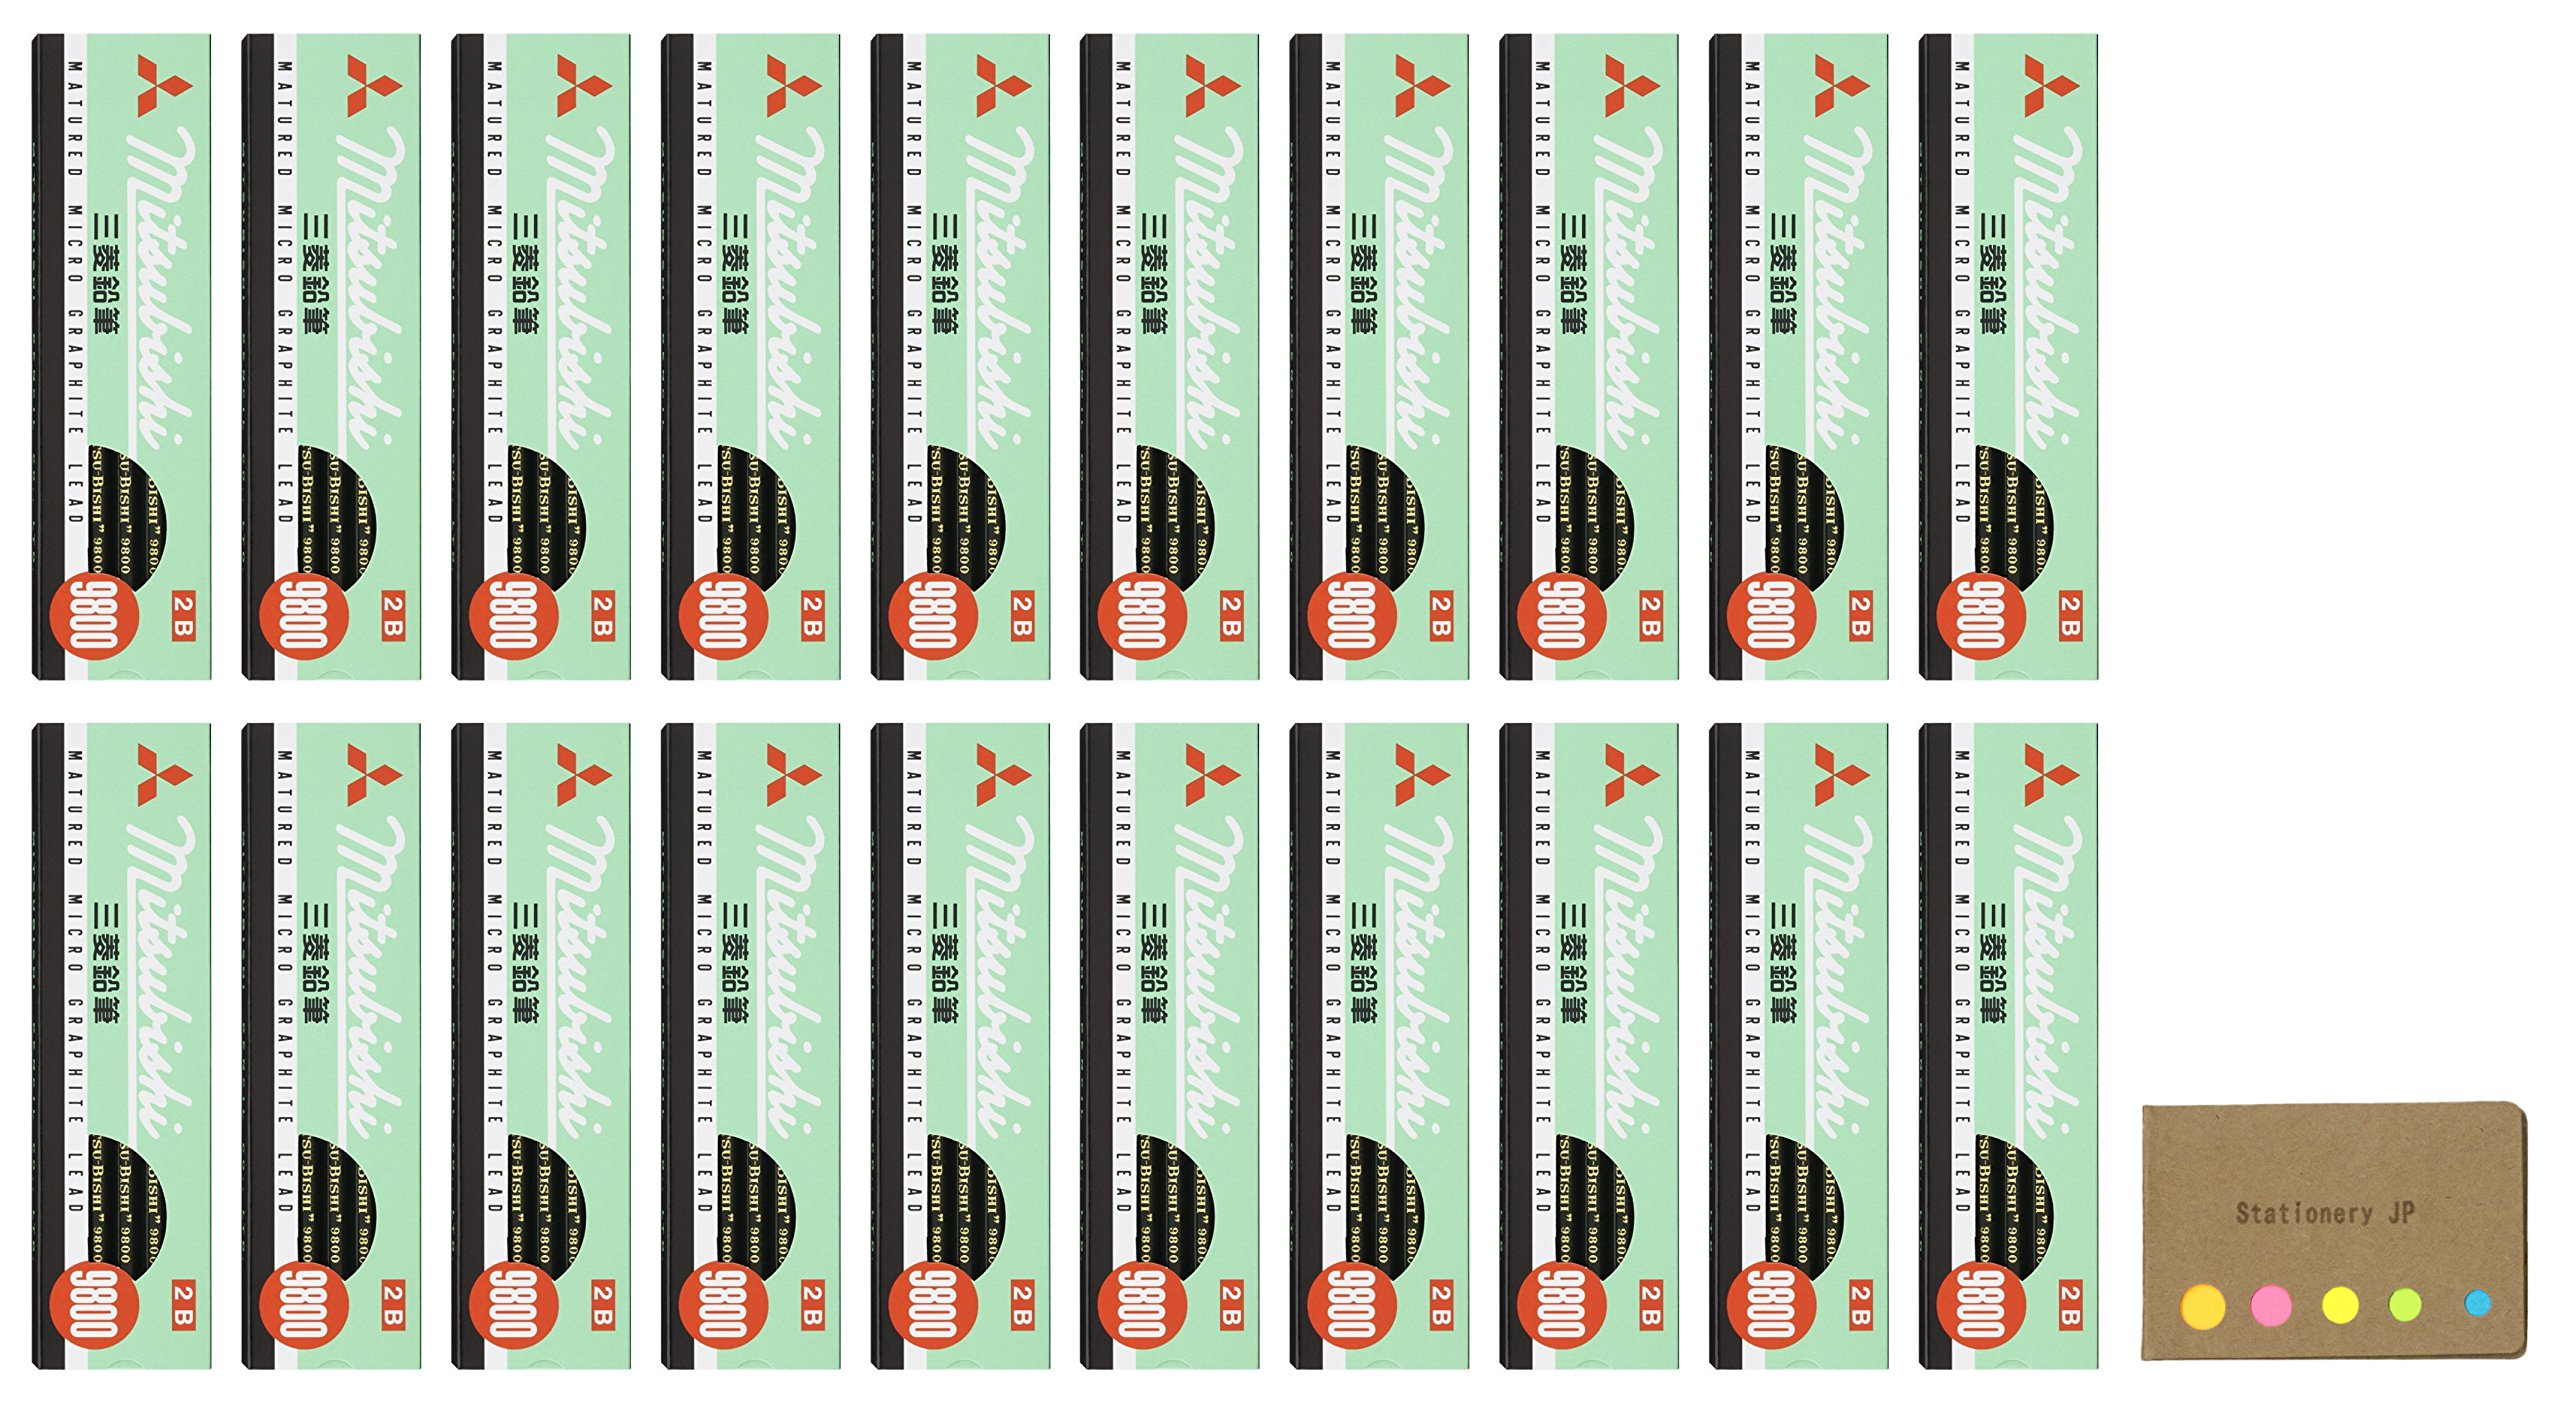 Uni Mitsubishi 9800 Pencil, 2B, 20-pack/total 240 pcs, Sticky Notes Value Set by Stationery JP (Image #1)